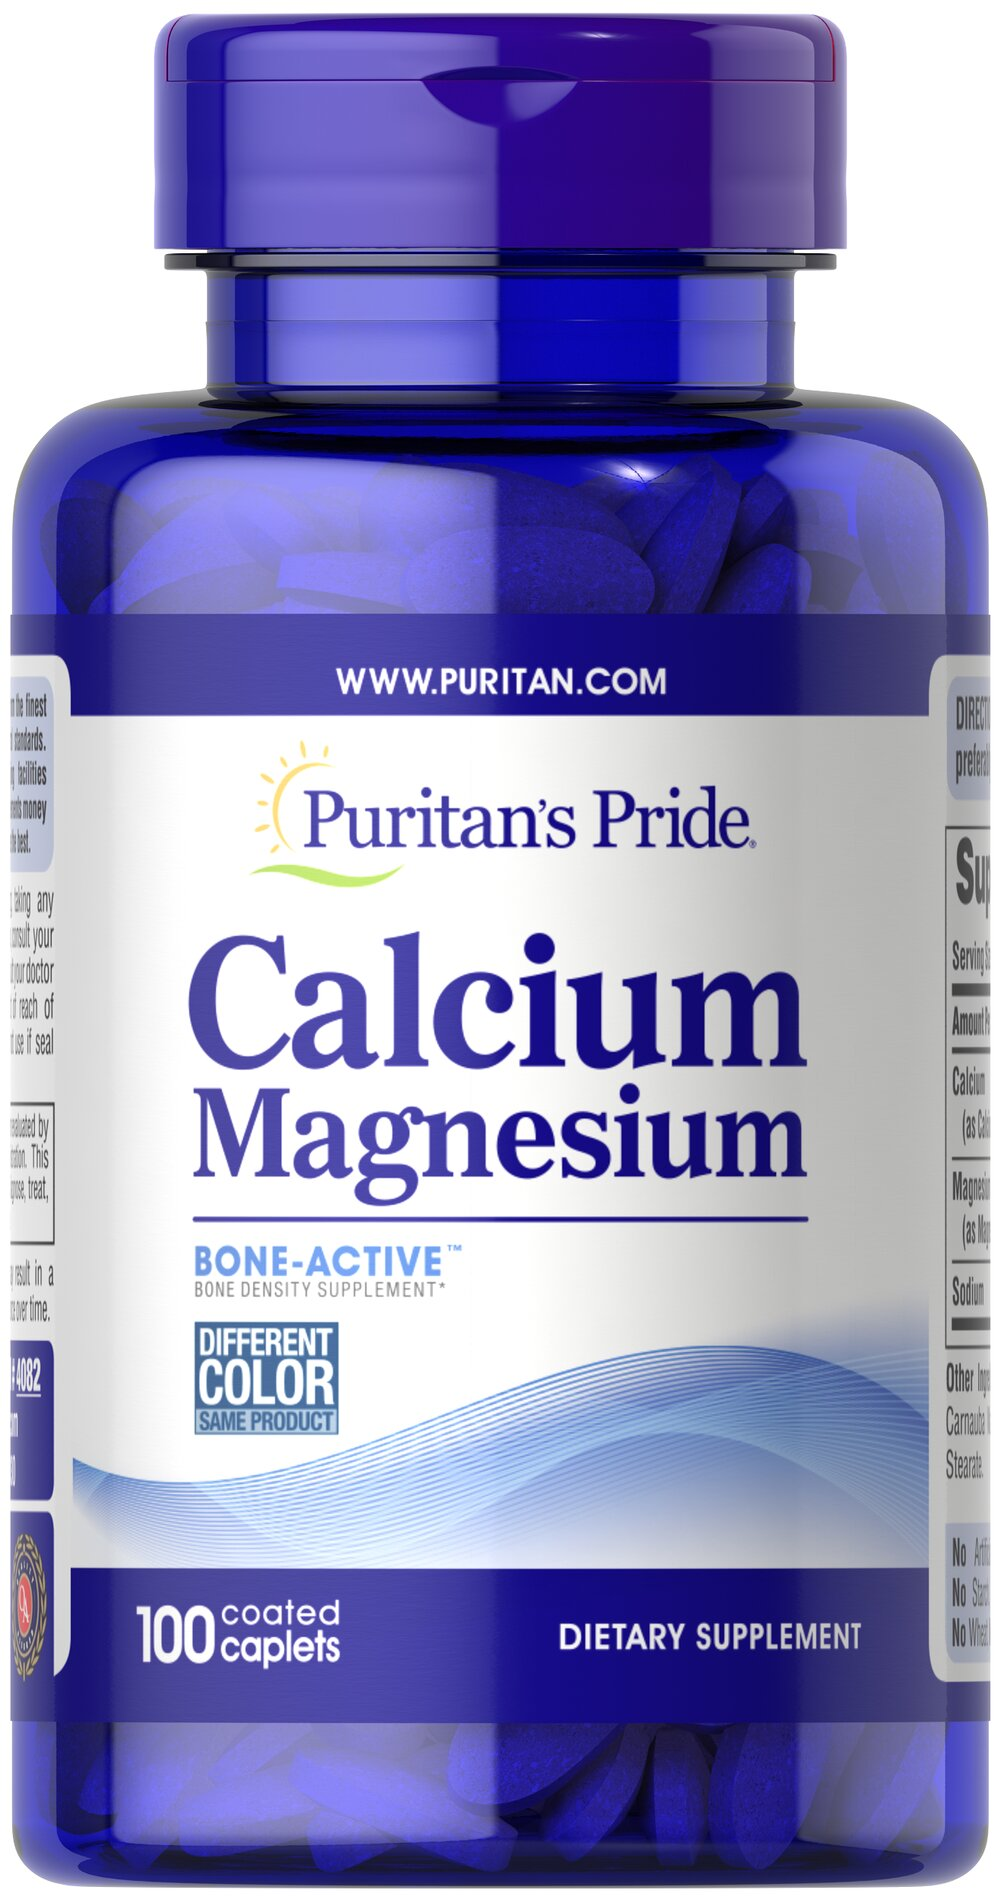 Calcium Magnesium Chelated <p>Looking for extra support for your bones?</p><p>Puritan's Pride offers a high quality Calcium and Magnesium supplement that delivers 500 mg Calcium and 250 mg Magnesium in a chelated form for optimal absorption.</p> 100 Caplets 500 mg/250 mg $8.09